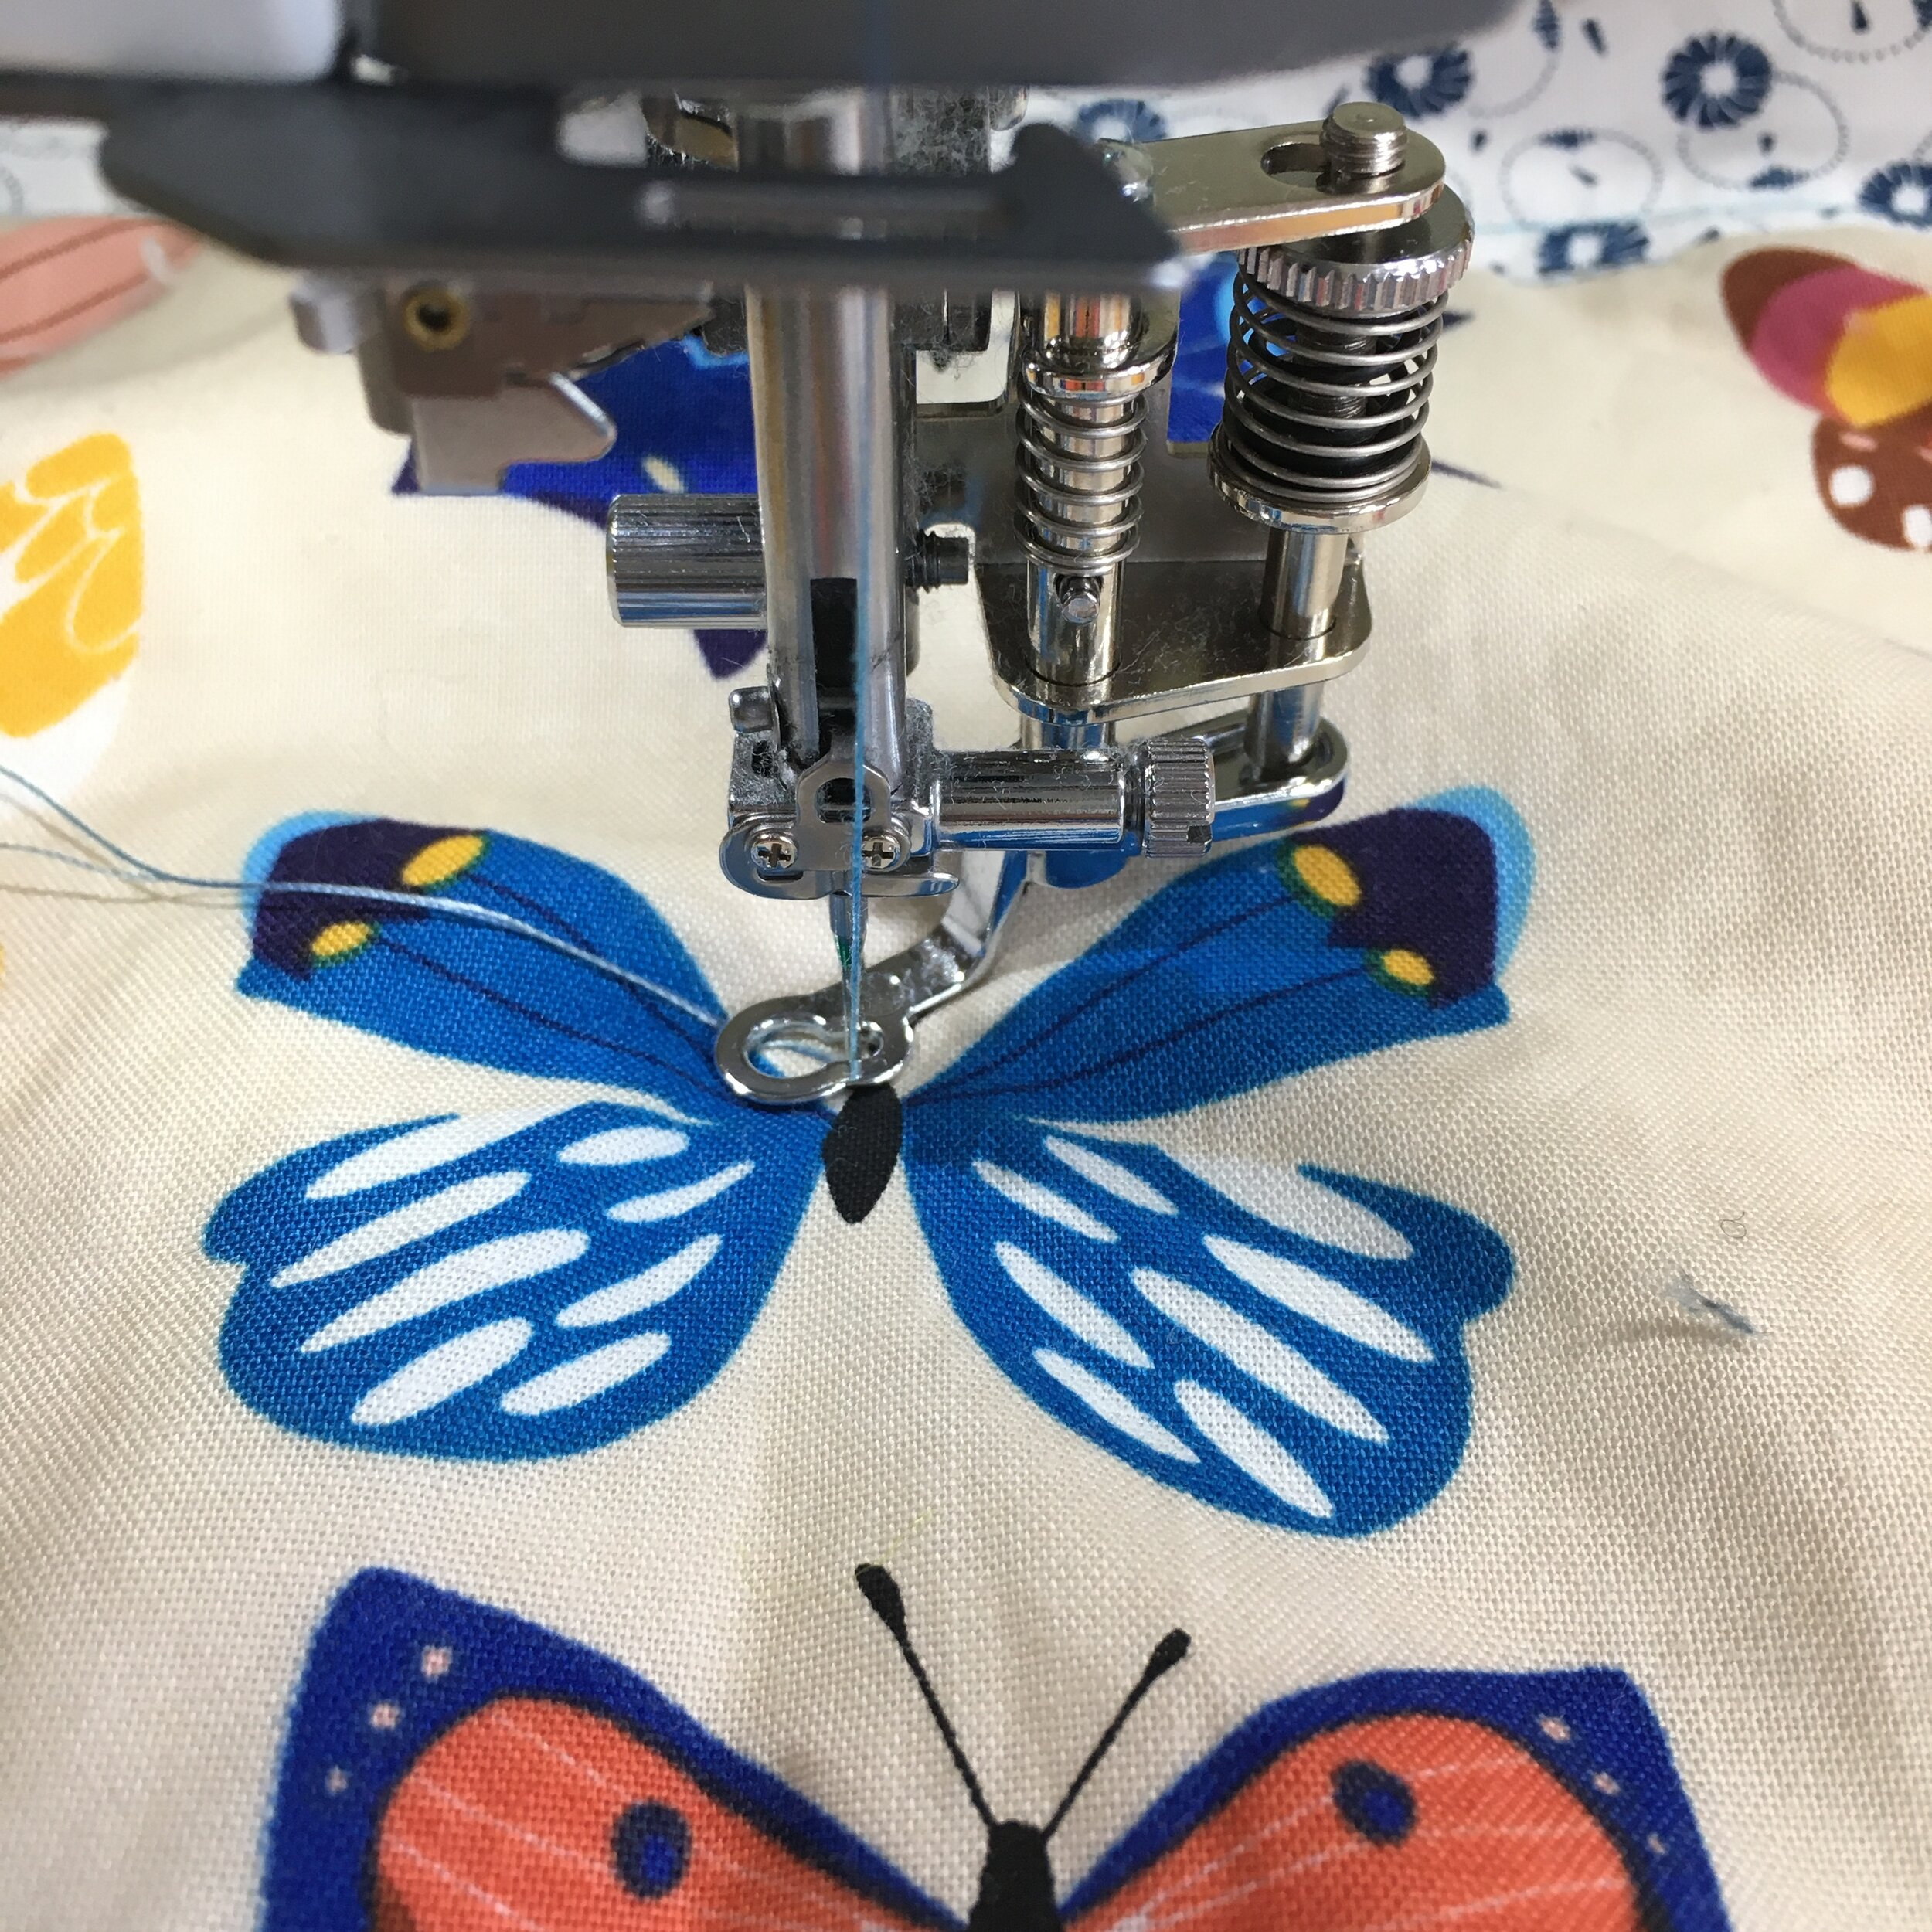 Bobbin thread has been pulled up from the back of the quilt.  Needle is down, reading to start quilting